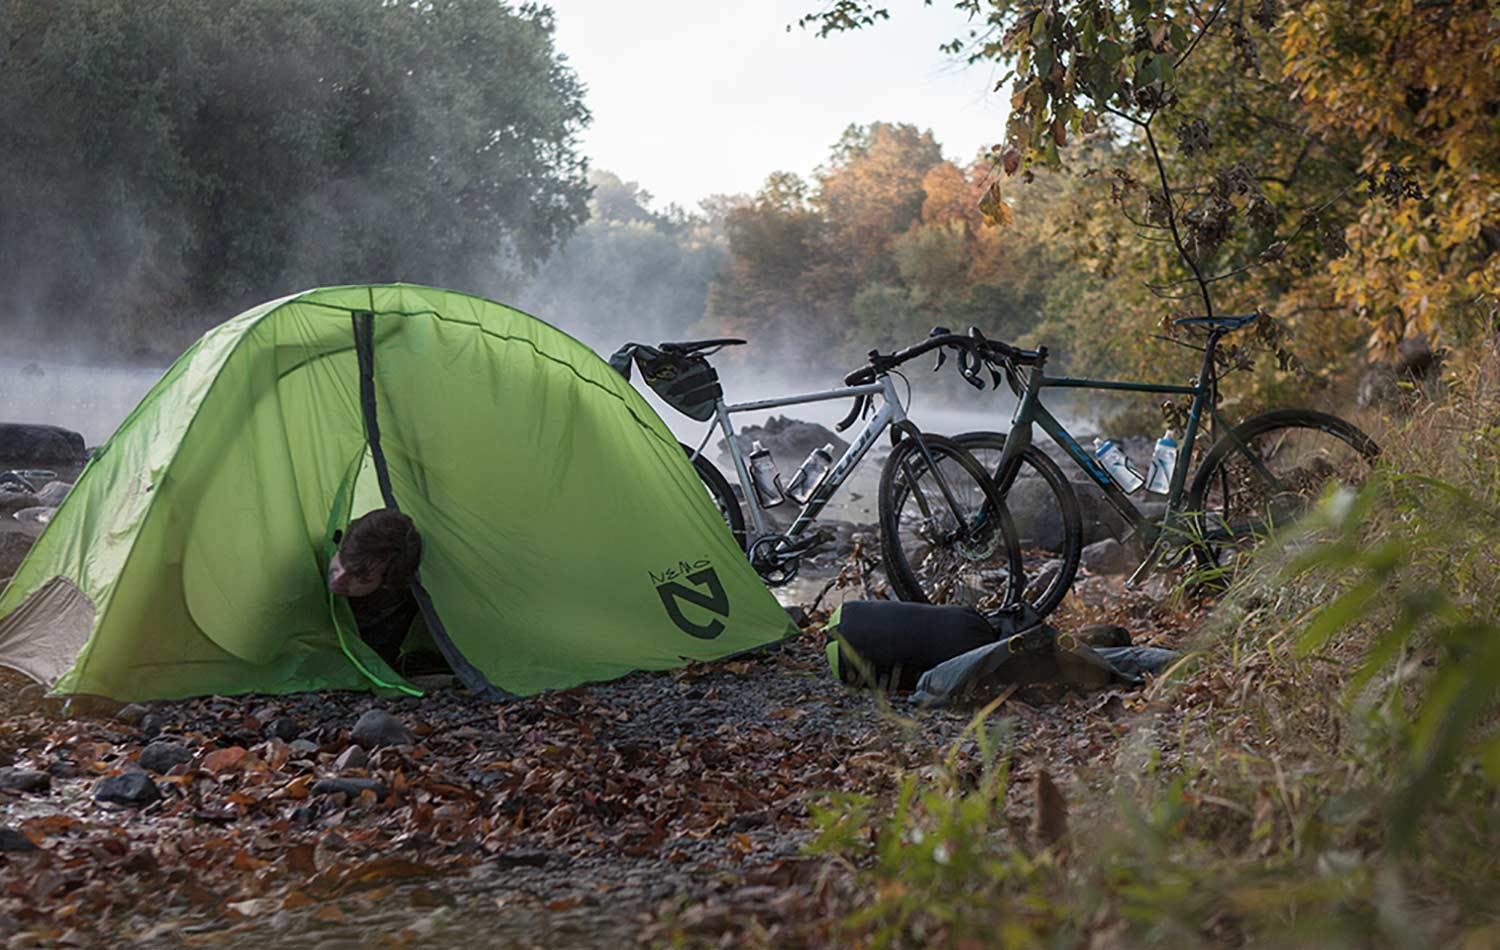 On a bank of a river, a person inside of a green tent rearing his head. Also, there are two bikes with a kit of bikepacking bags on the floor next to the camping area